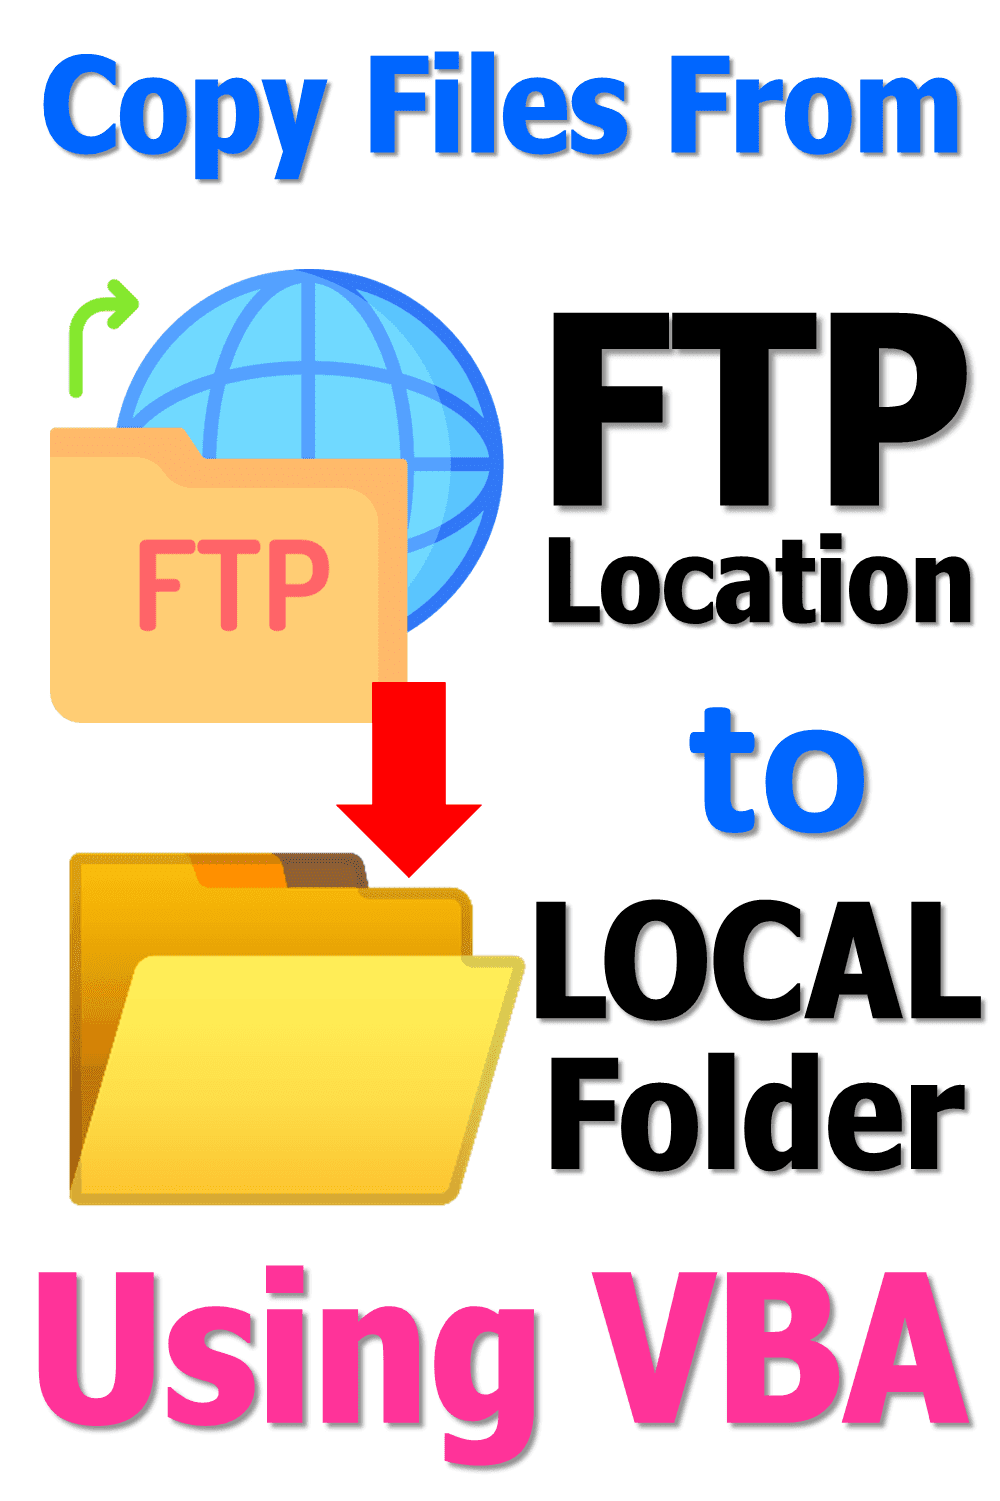 How To Copy Files From Ftp Location Using Vba Batch File Data Science Computer Science